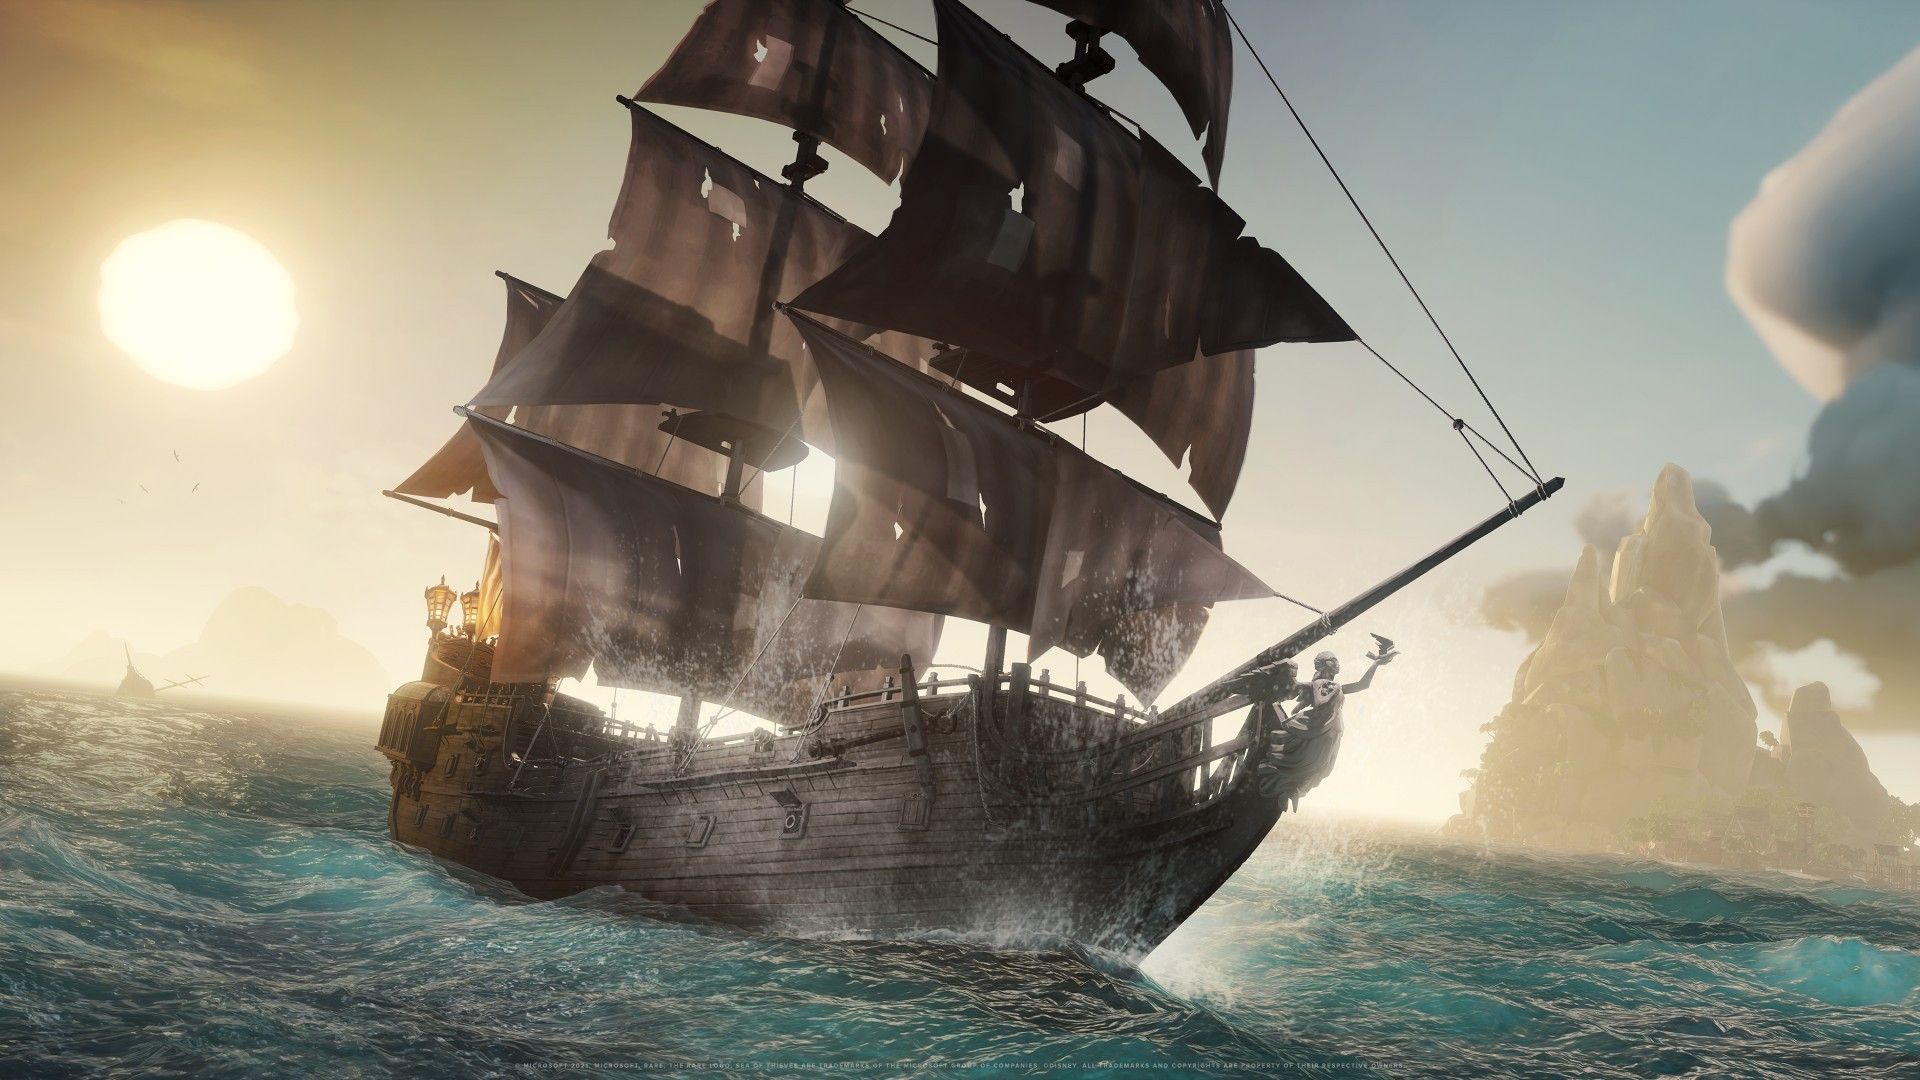 See the Ultimate Pirate Crossover in Sea of Thieves: A Pirate's Life Gameplay Footage 1